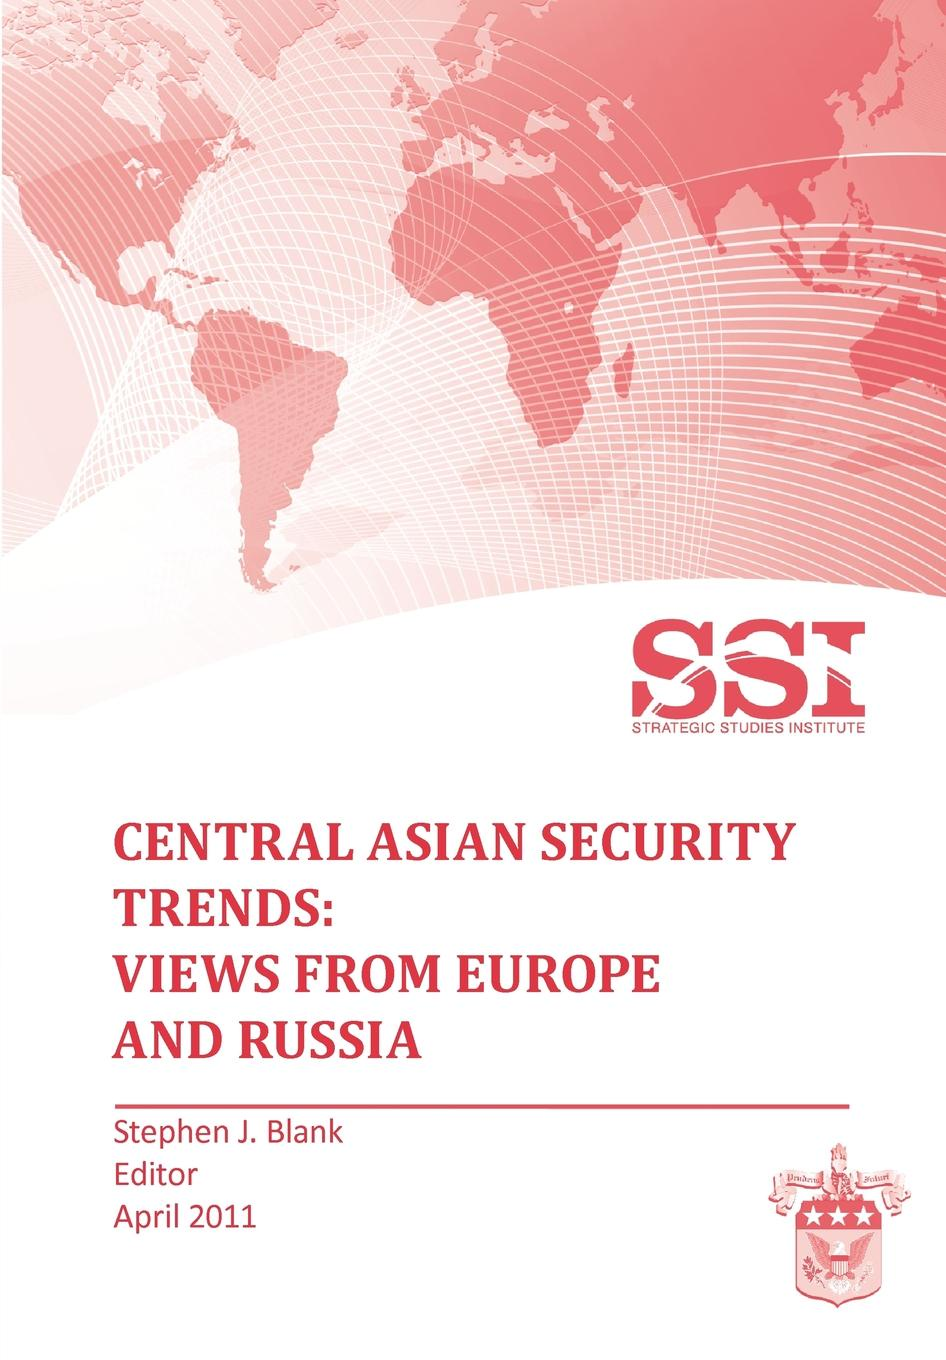 Strategic Studies Institute Central Asian Security Trends. Views from Europe and Russia leonard wong strategic studies institute stifled innovation developing tomorrow